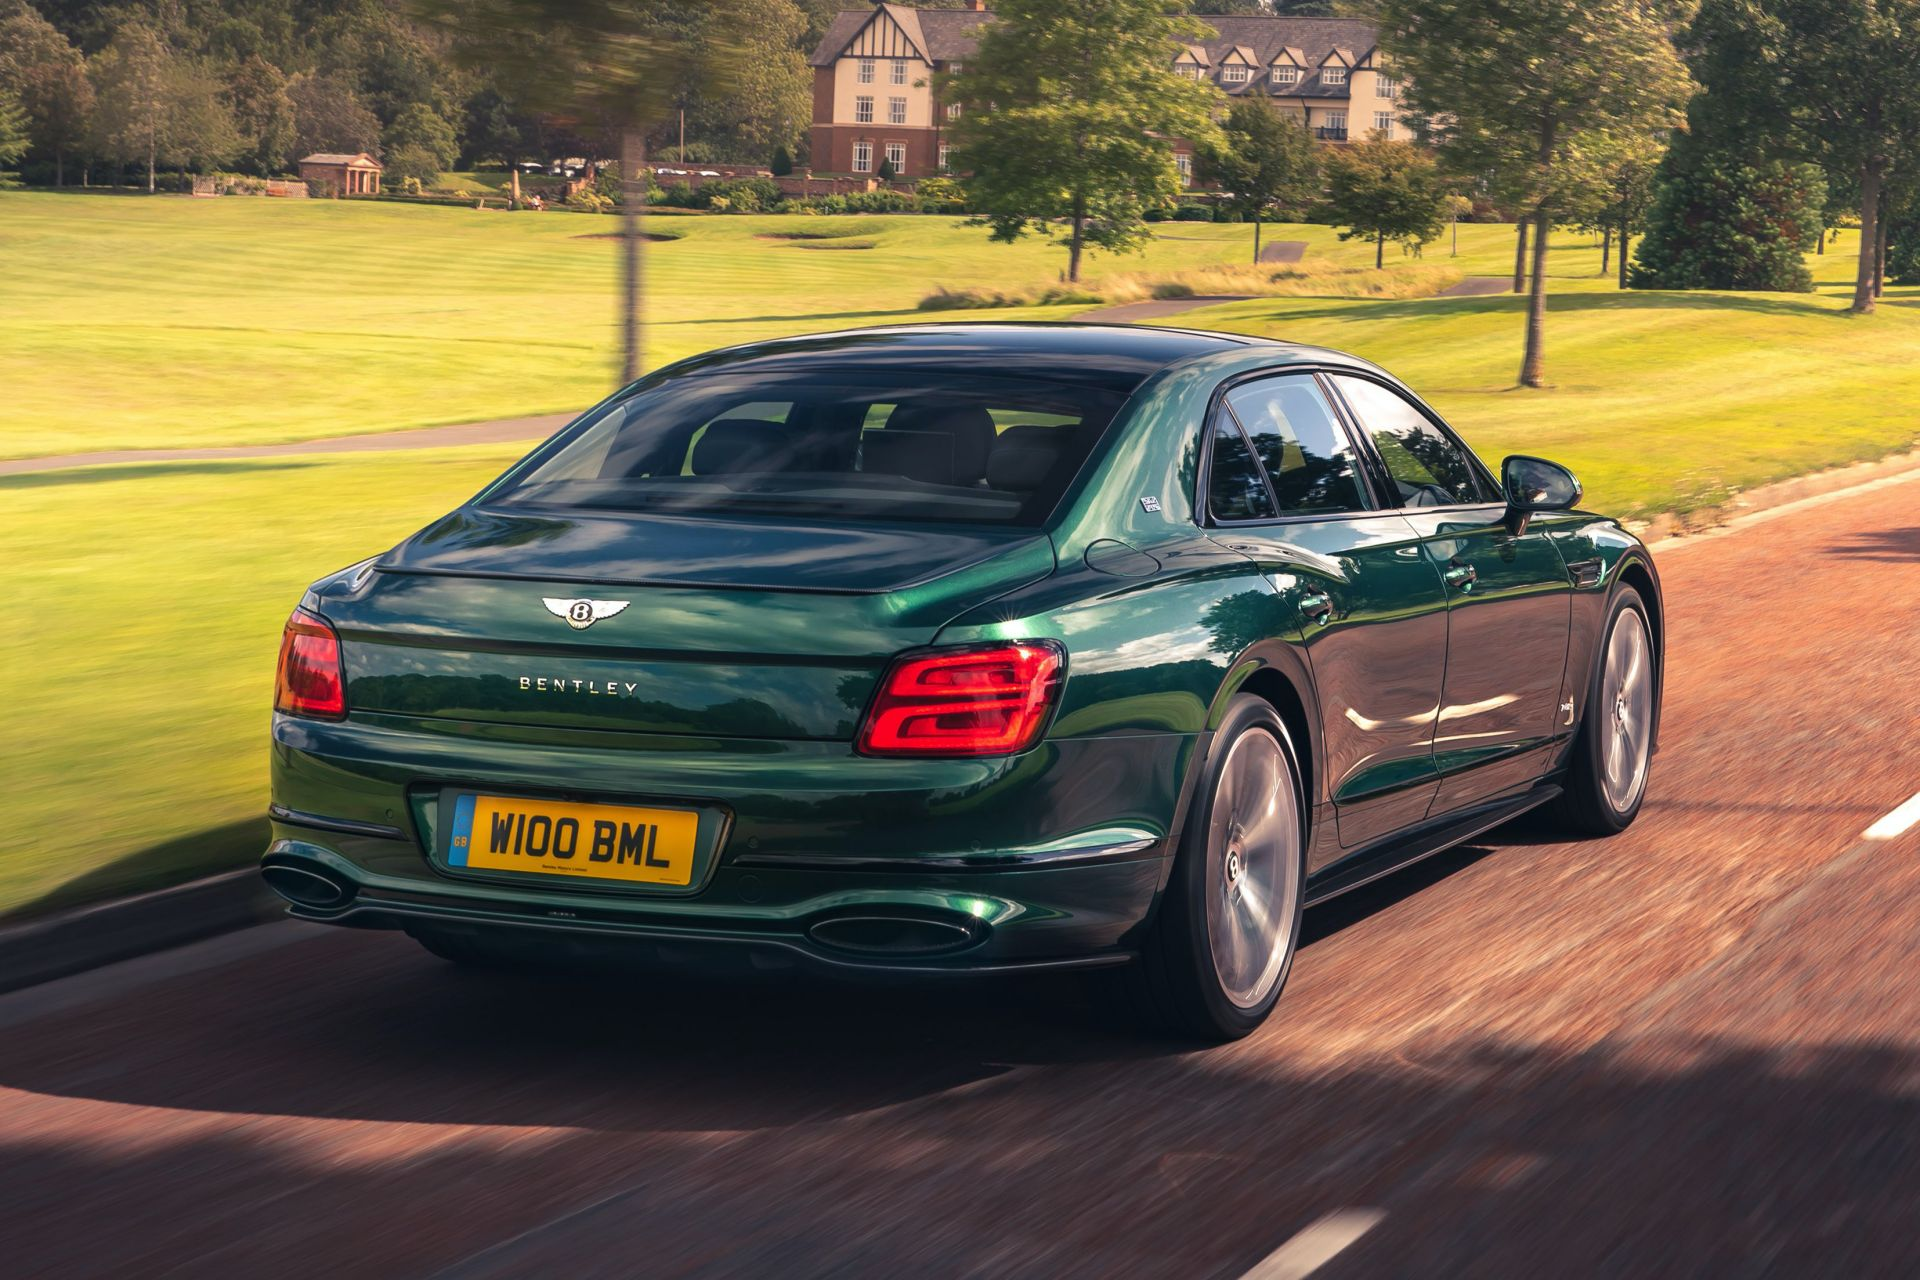 Bentley-Flying-Spur-Styling-Specification-2